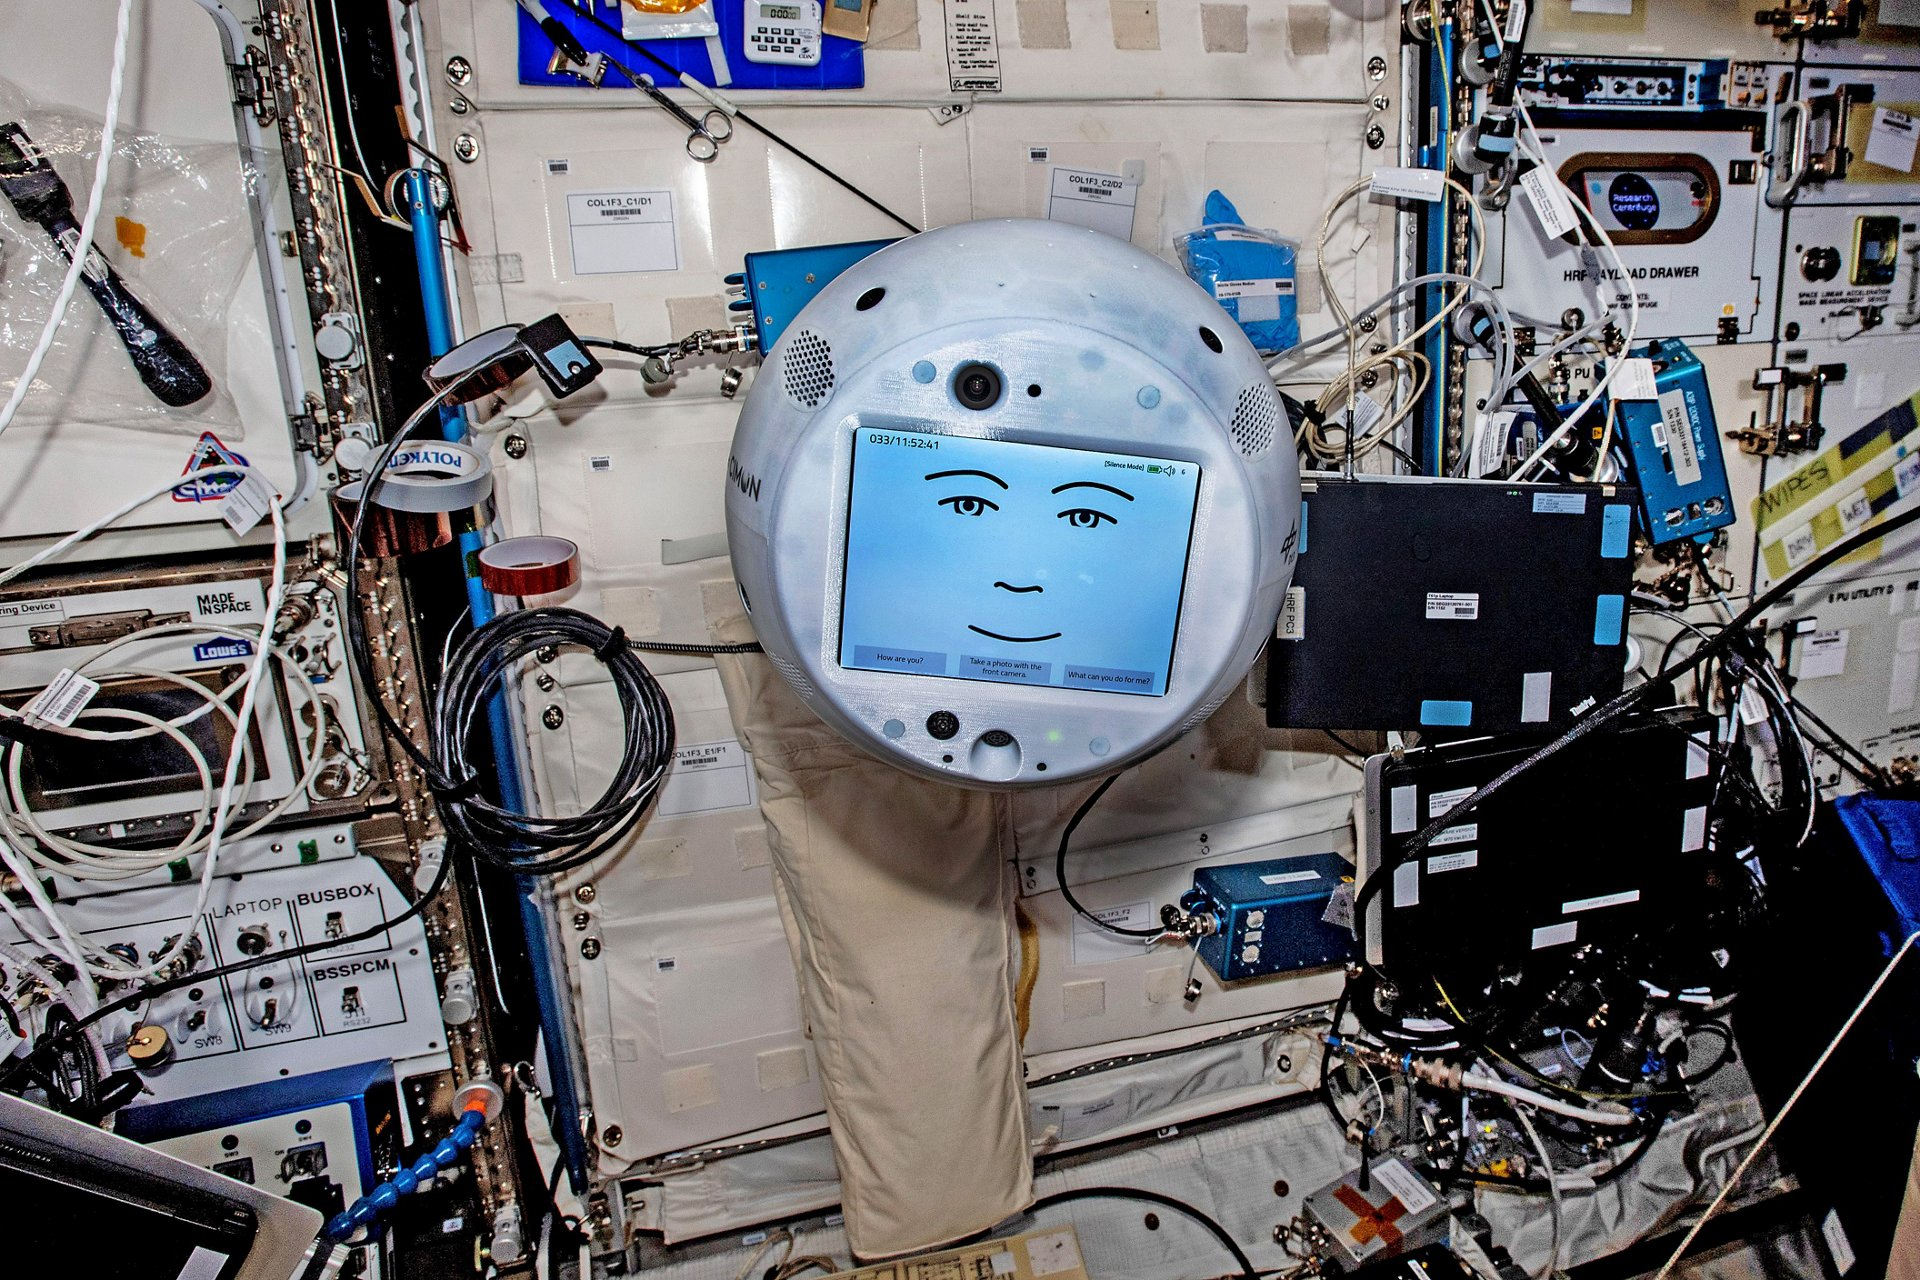 New tasks for the artificial astronaut assistant CIMON-2: The AI-controlled, flying sphere will take on scientific experiments on board the International Space Station ISS with ESA astronaut Matthias Maurer and provide educational services from orbit. CIMON-2 is already on board the ISS and Matthias Maurer is scheduled to launch with 'Crew-3' on his 'Cosmic Kiss' mission this autumn. The space agency DLR and Airbus have signed a mission contract to provide 'in-orbit' missions with four human partners.